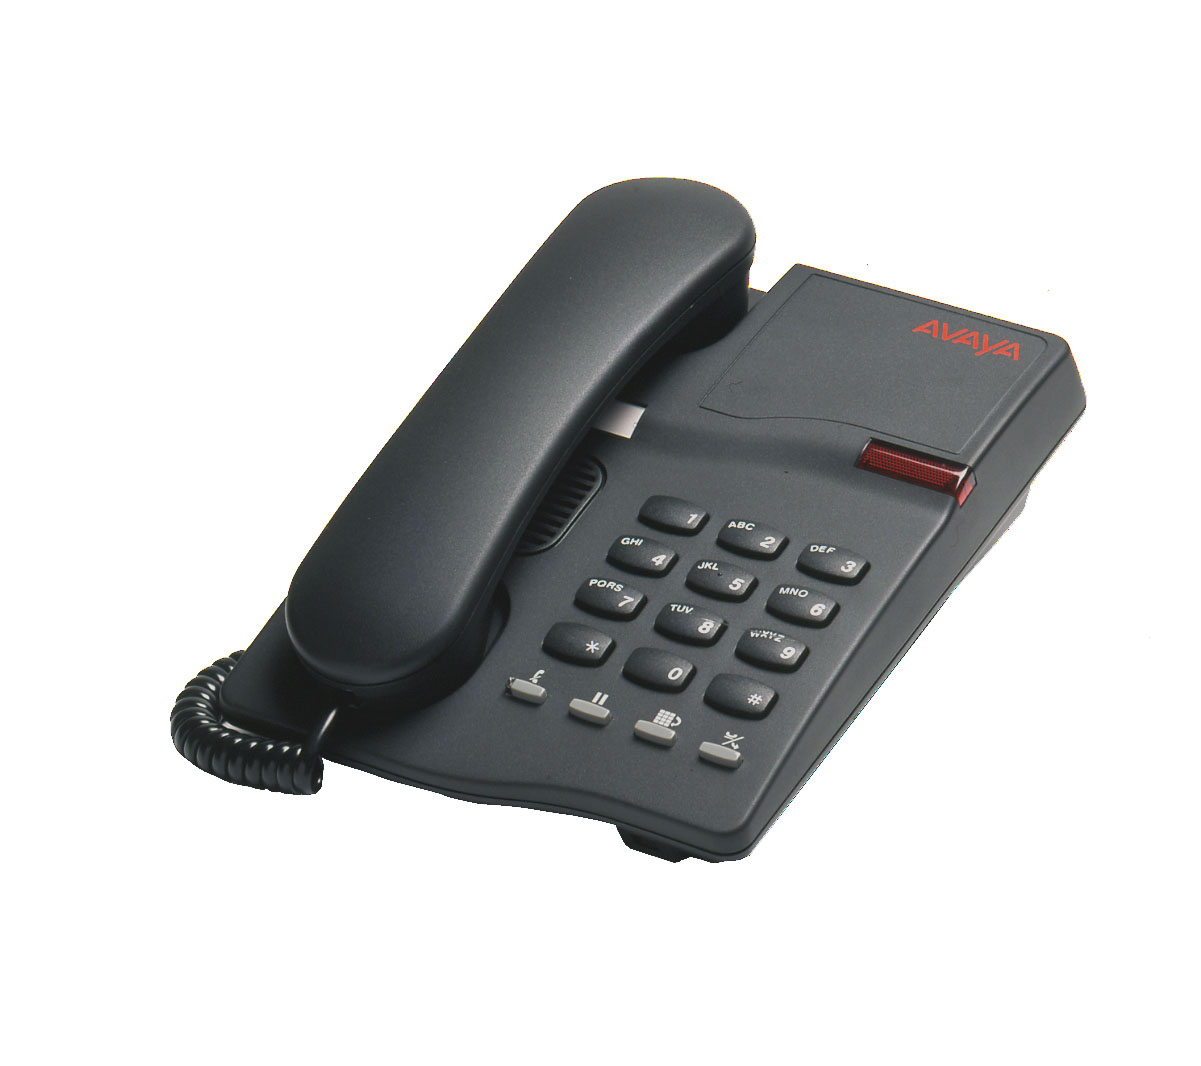 Avaya 9330 AV Analogue Telephone - New